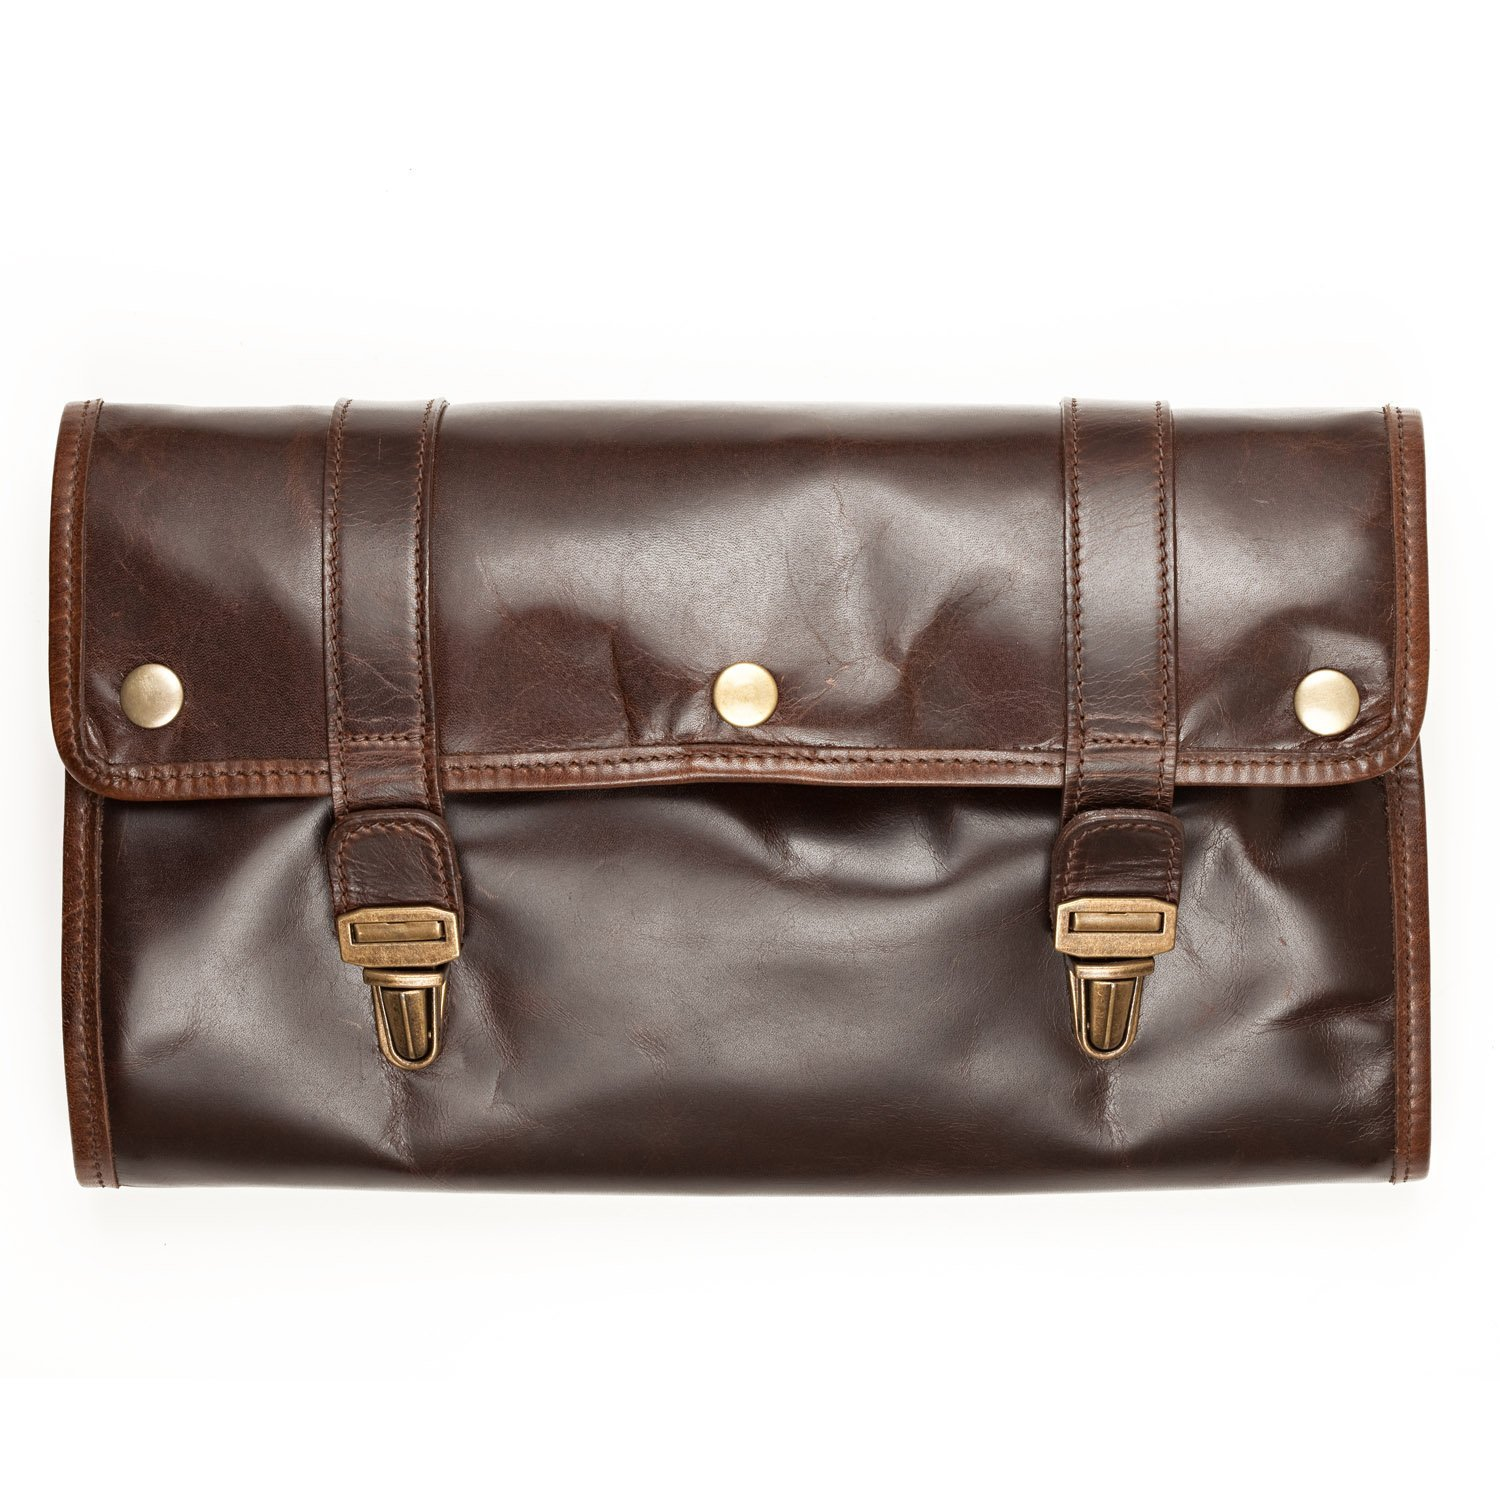 Moores and Giles Austin Hanging Toiletries Kit - Brown